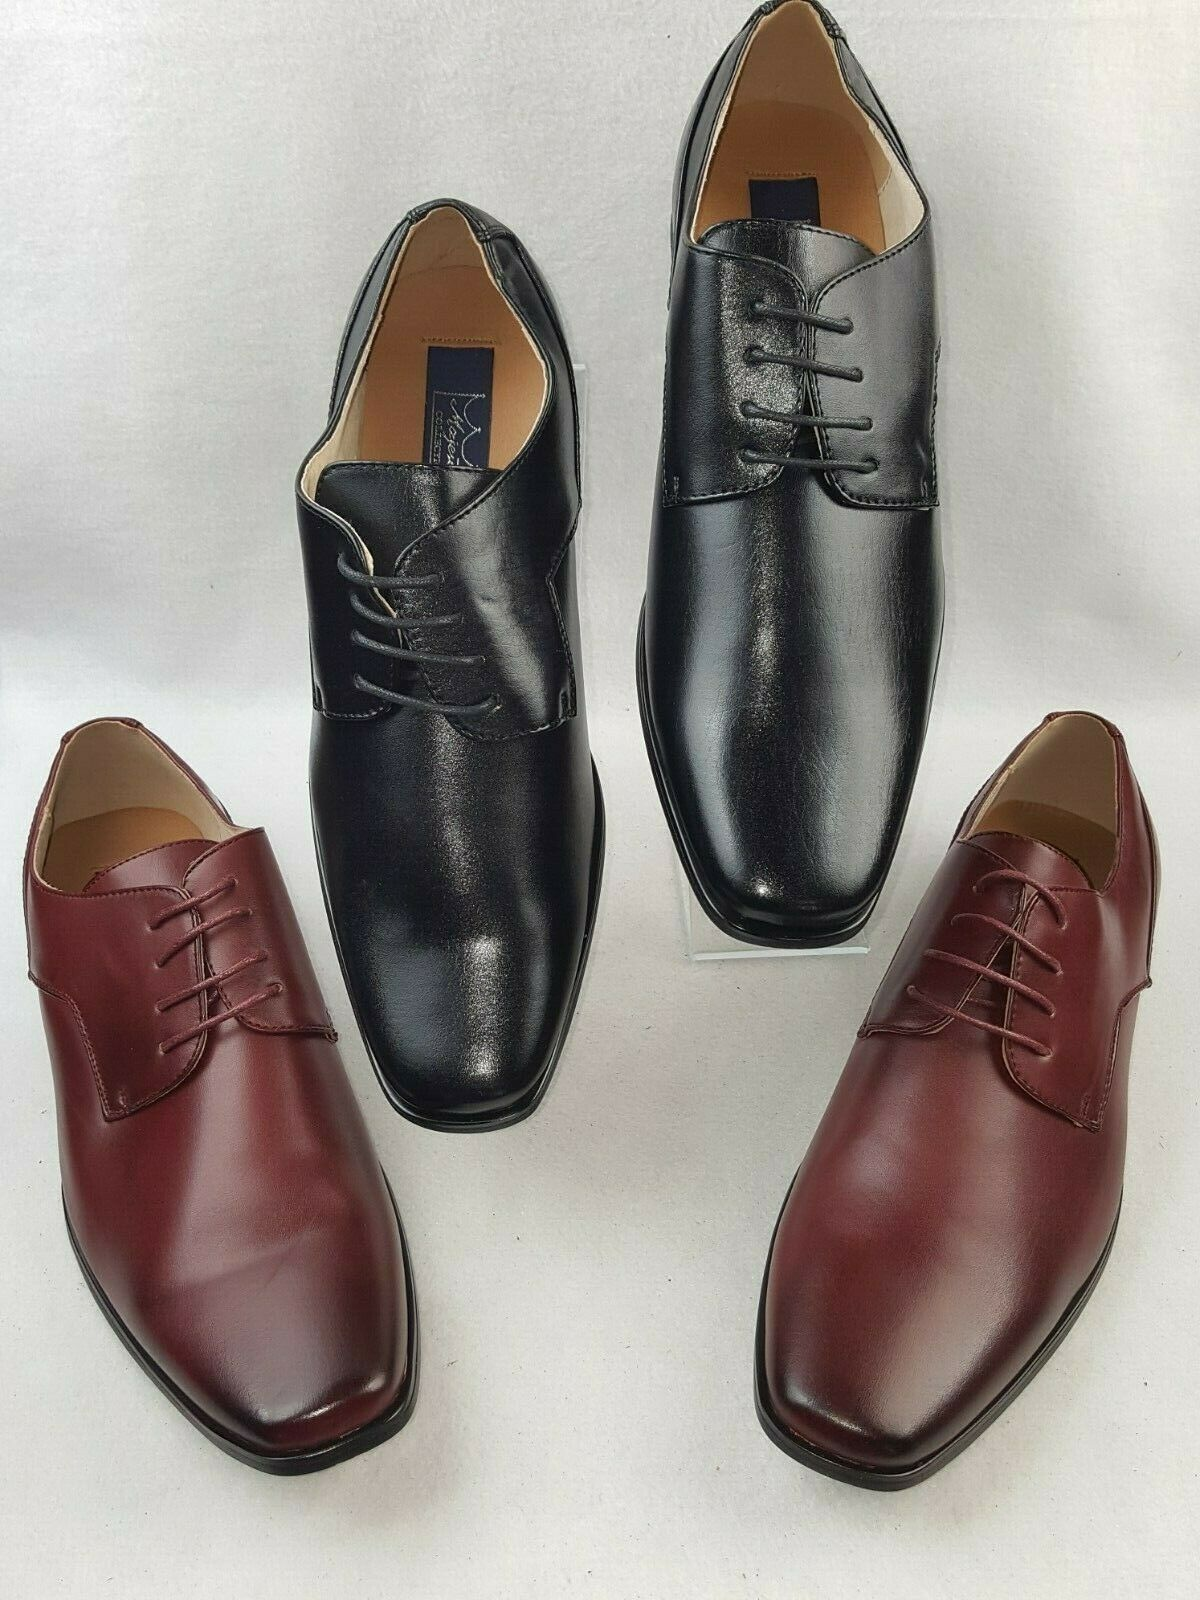 Majestic Collection  37683  Men's Lace-Up Oxford Dress shoes